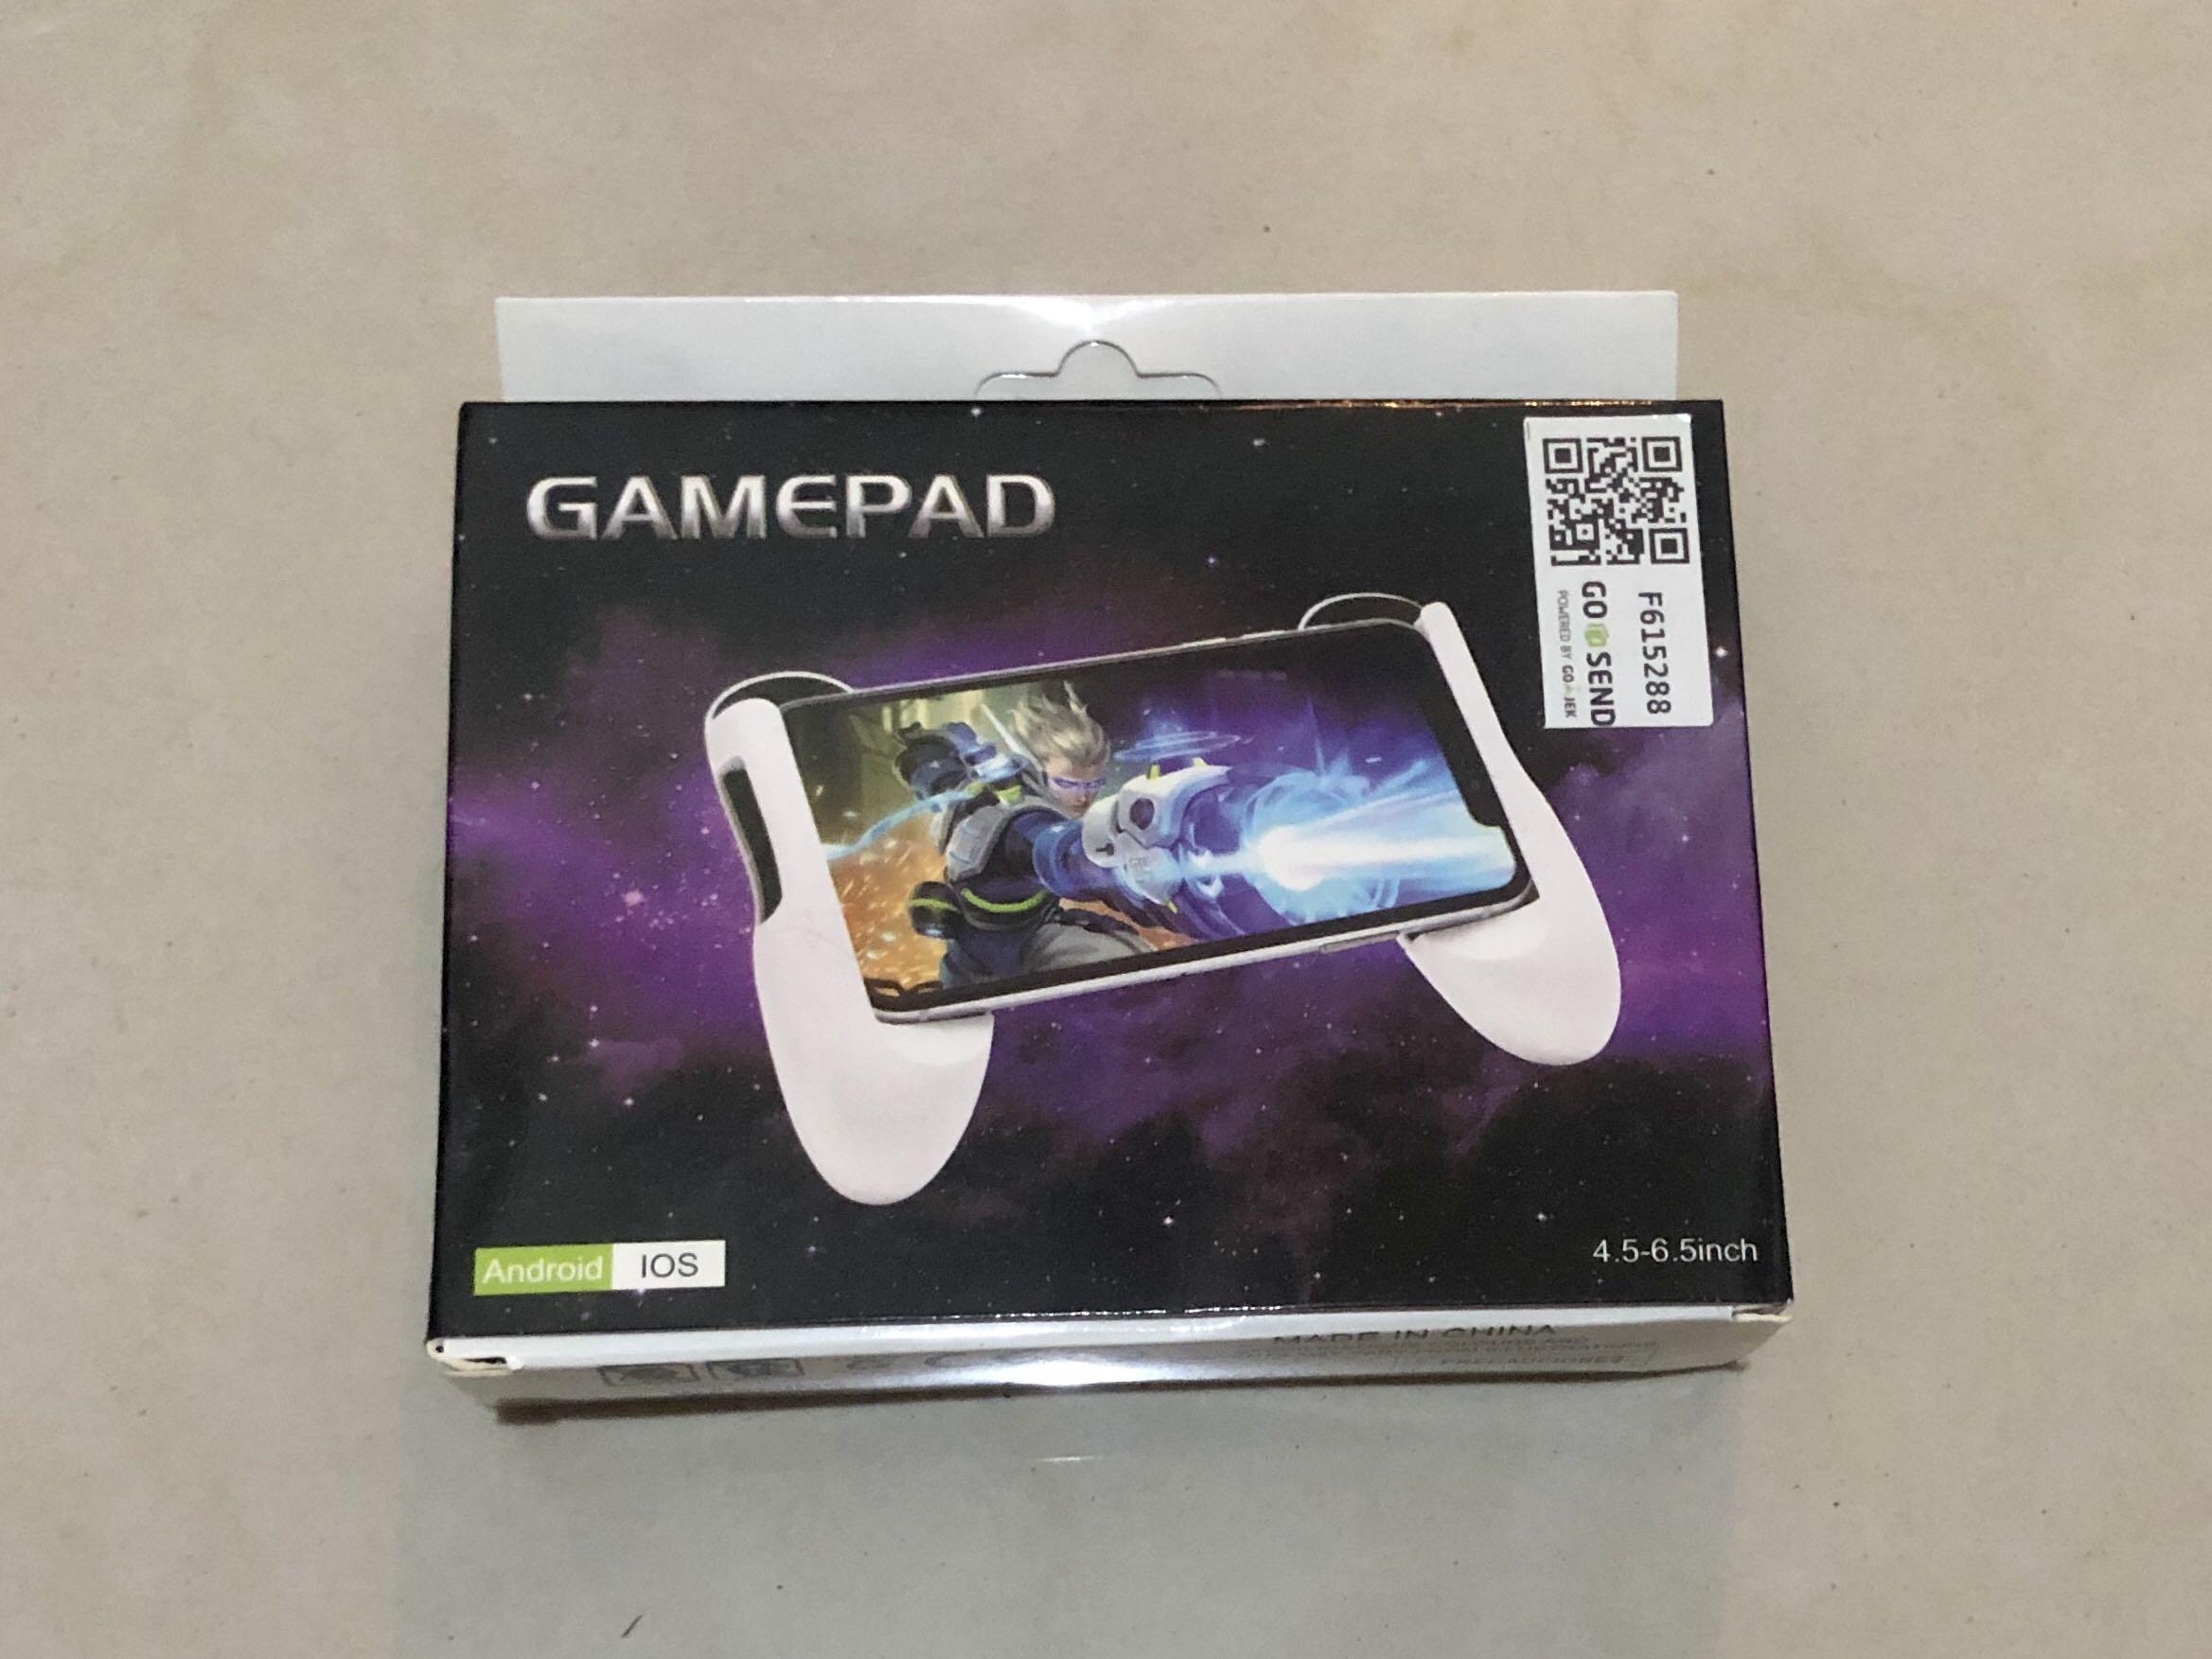 Gamepad for android/ios